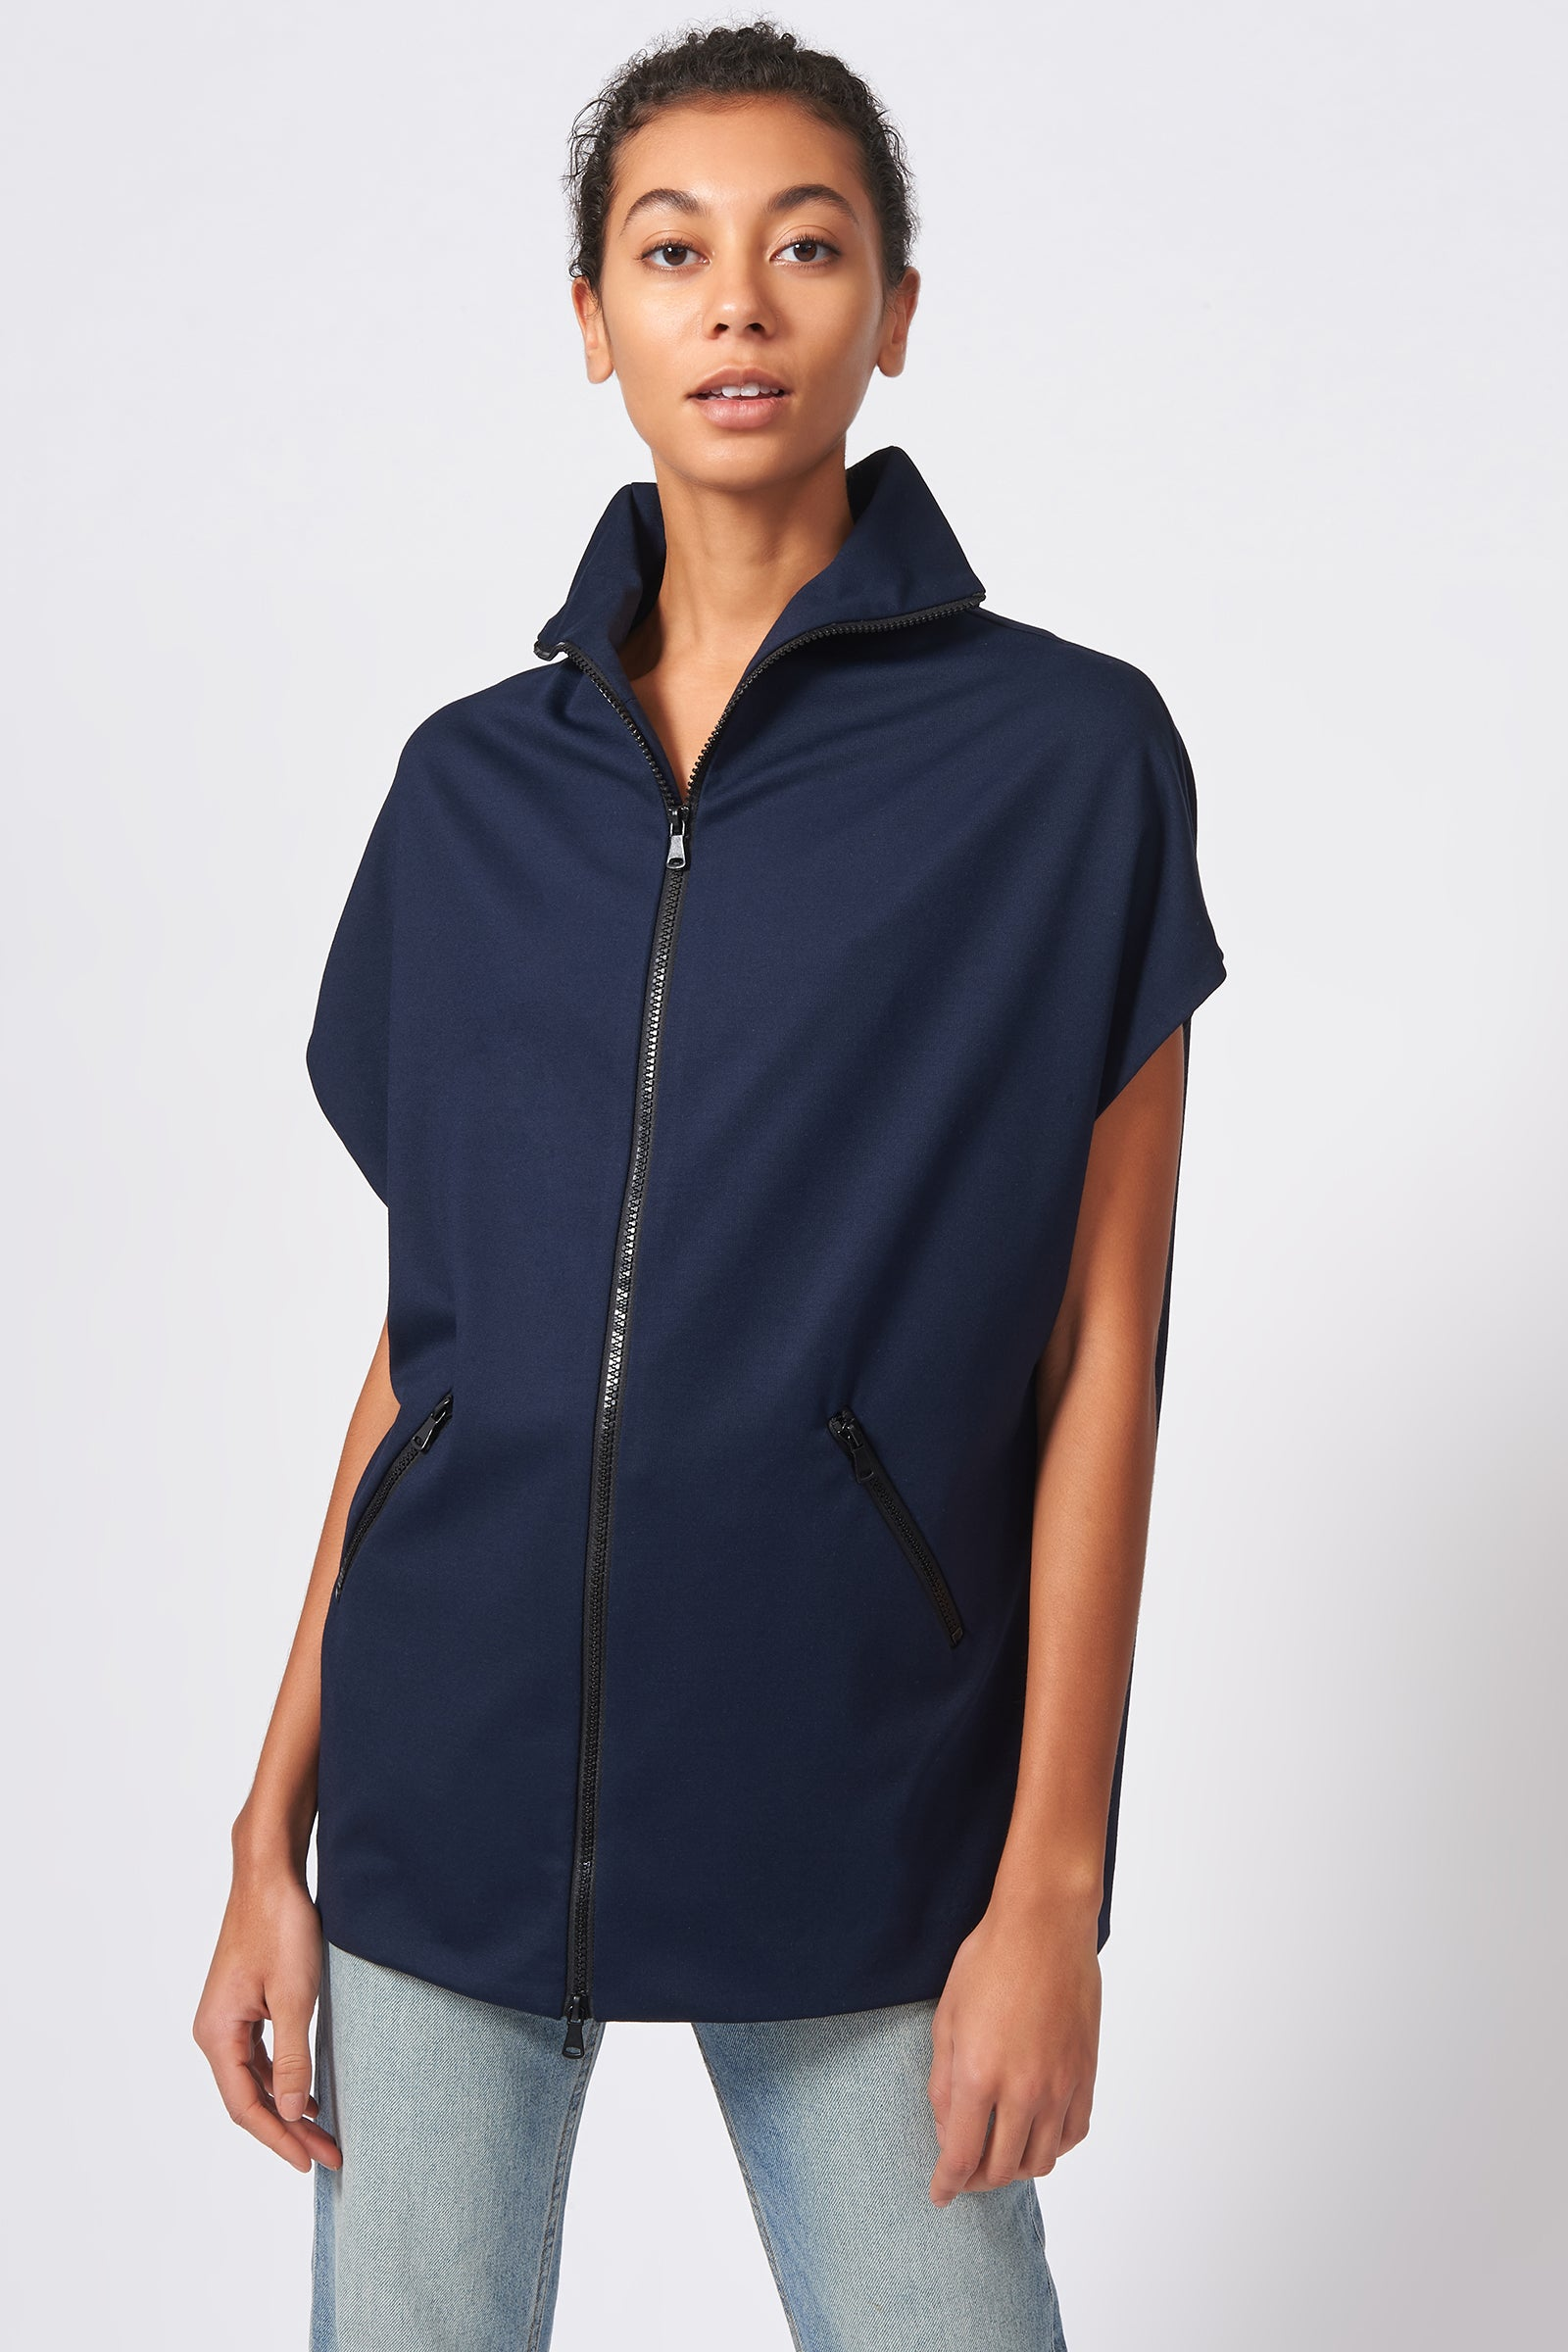 Kal Rieman Ponte Zip Mock Cardigan in Navy on Model Front View